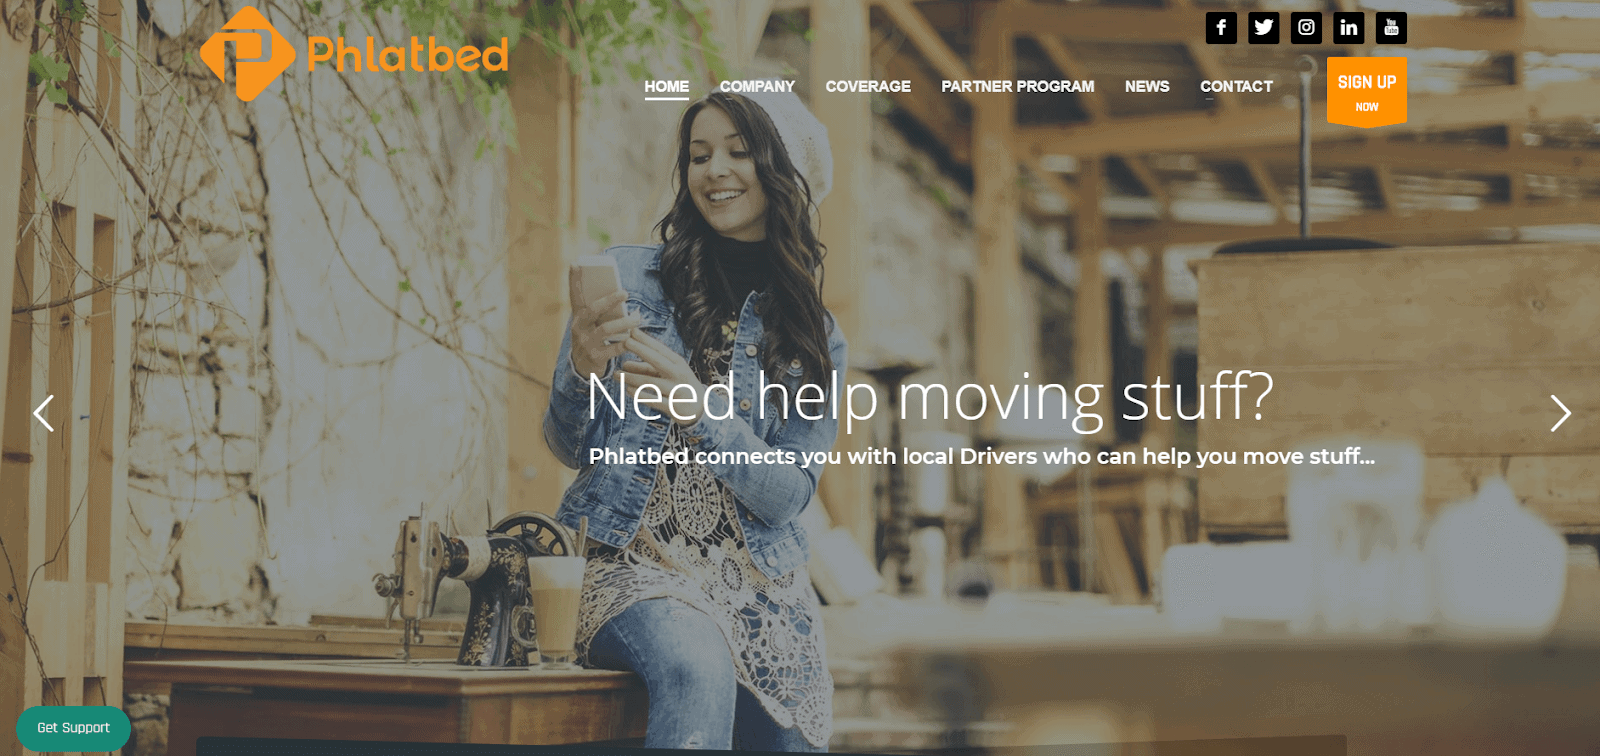 Uber for moving: Phlatbed homepage